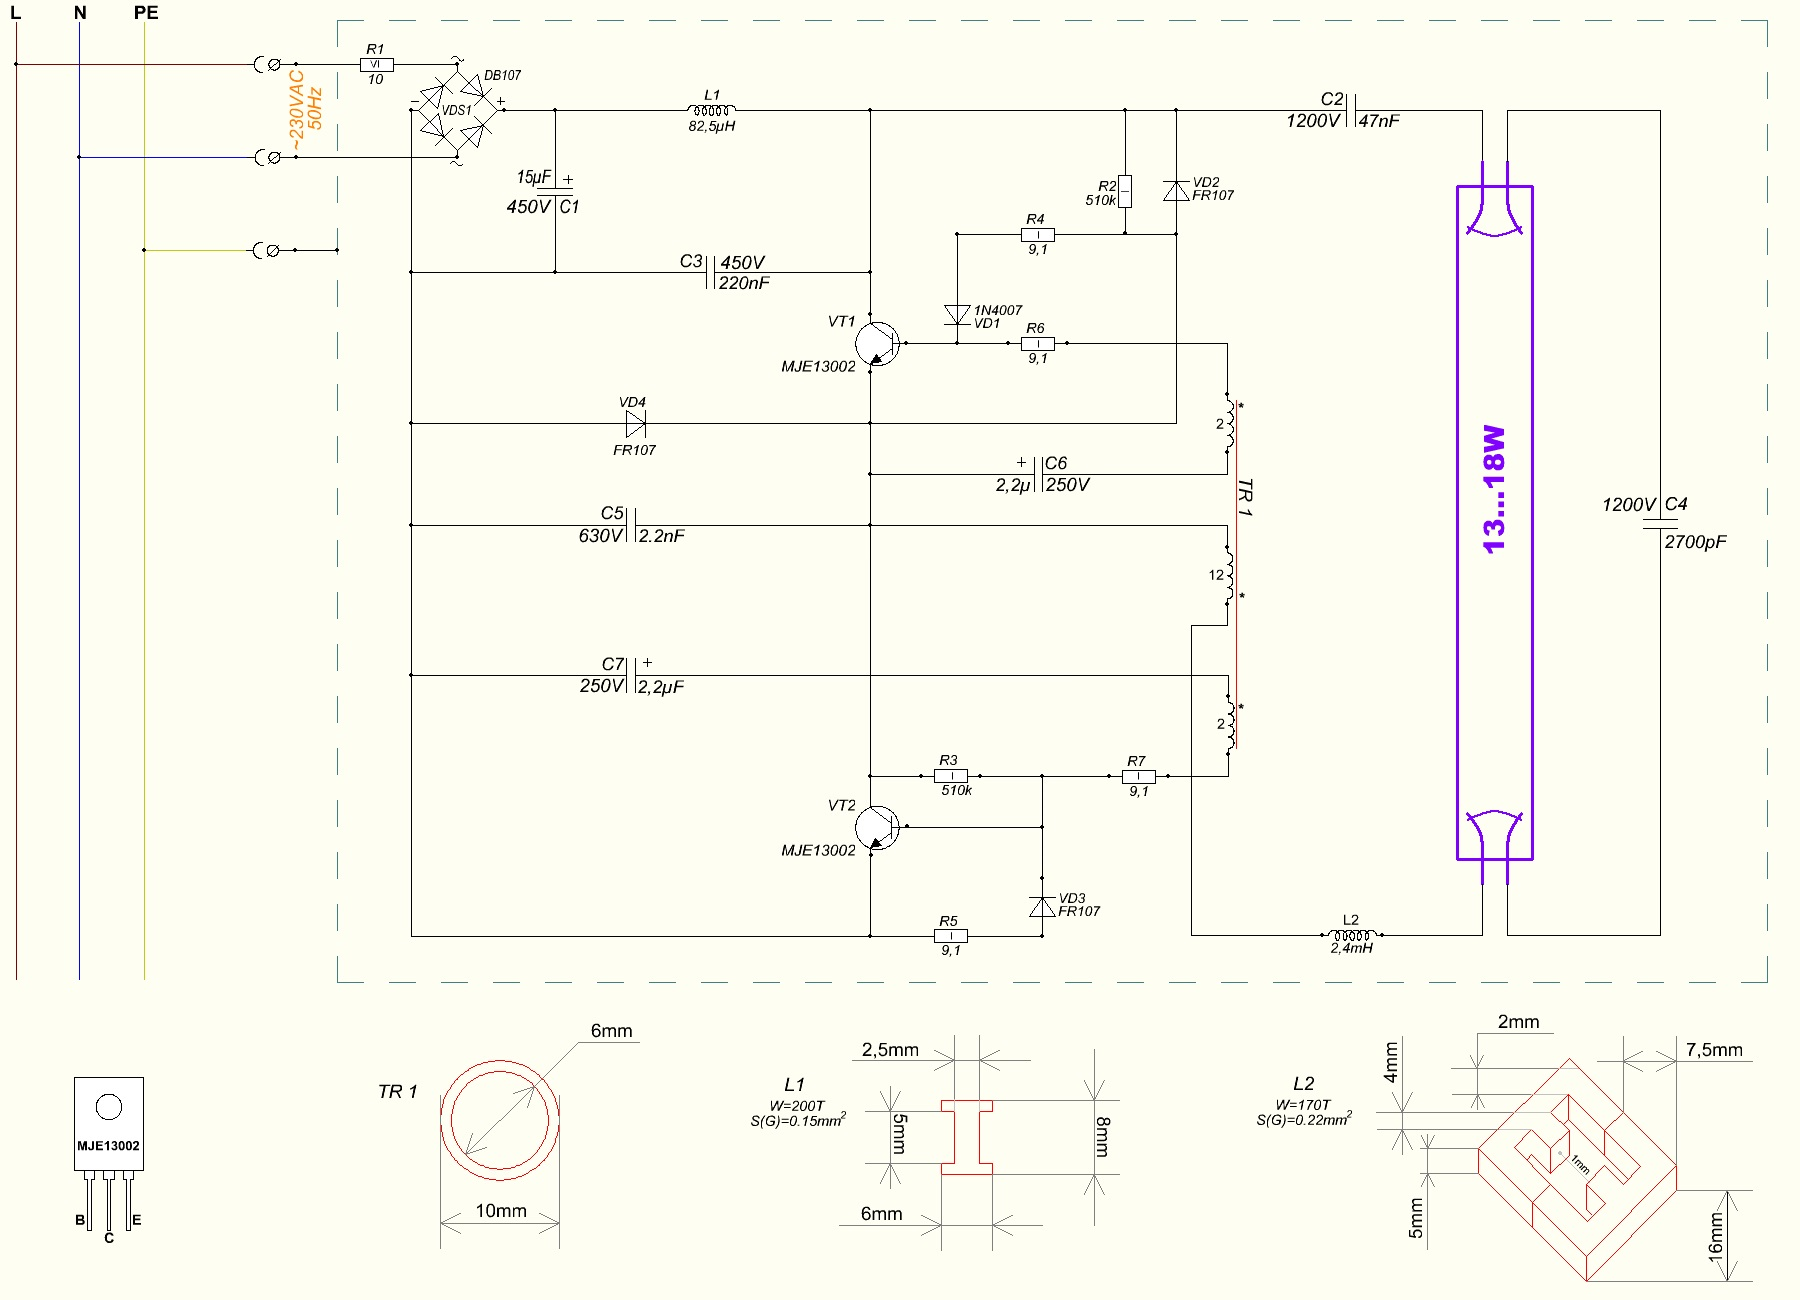 t5 ho ballast wiring diagram venn formula for 2 sets t8 lampholder bi pin fluorescent lamp holder